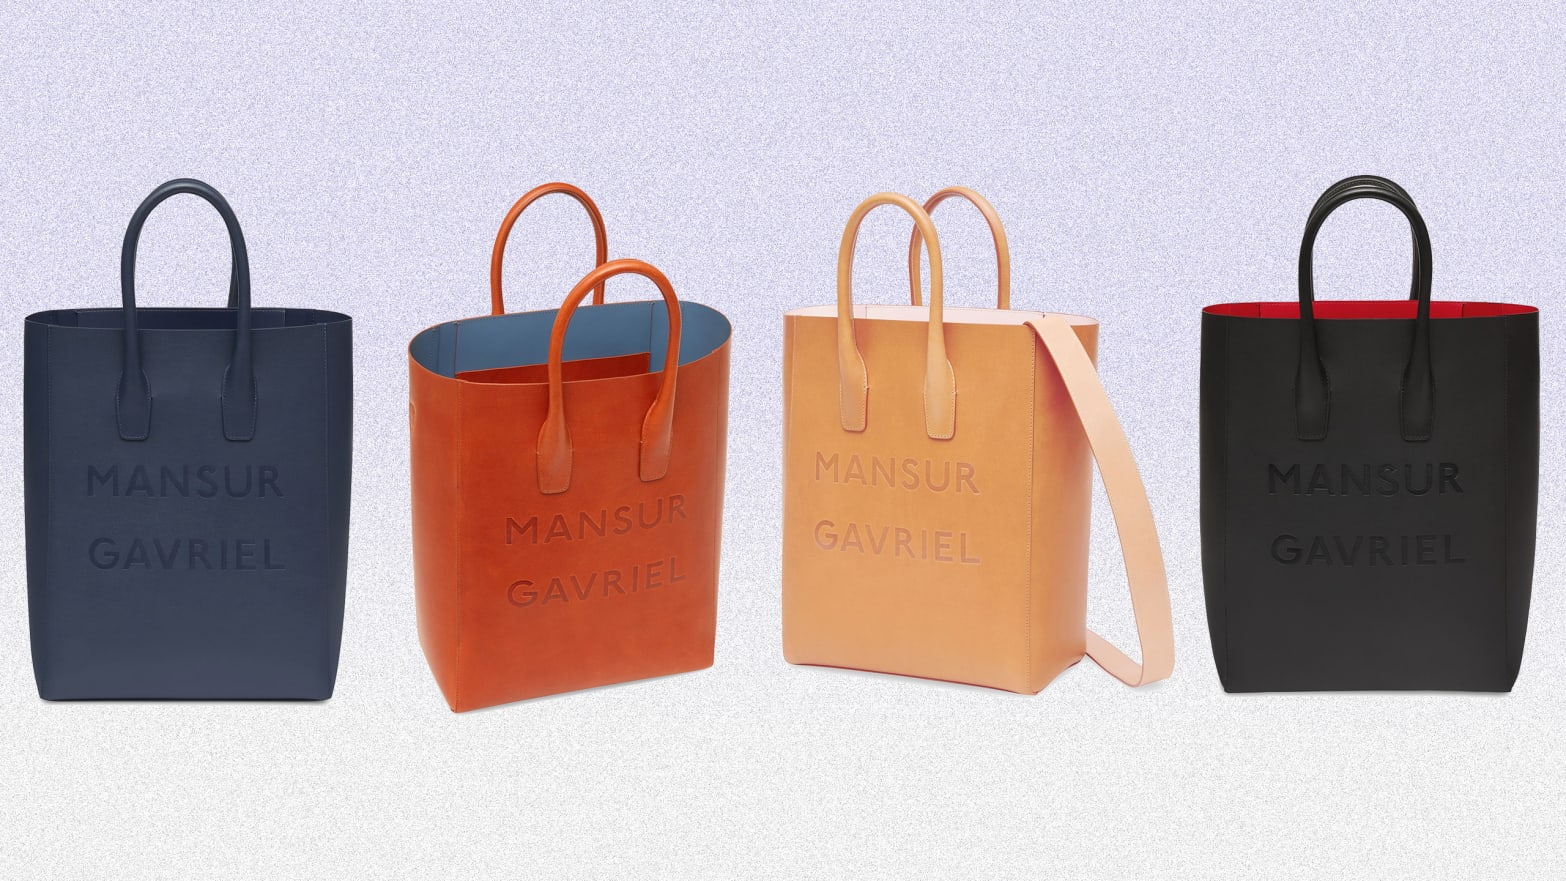 The New Mansur Gavriel Logo North South Tote is Here